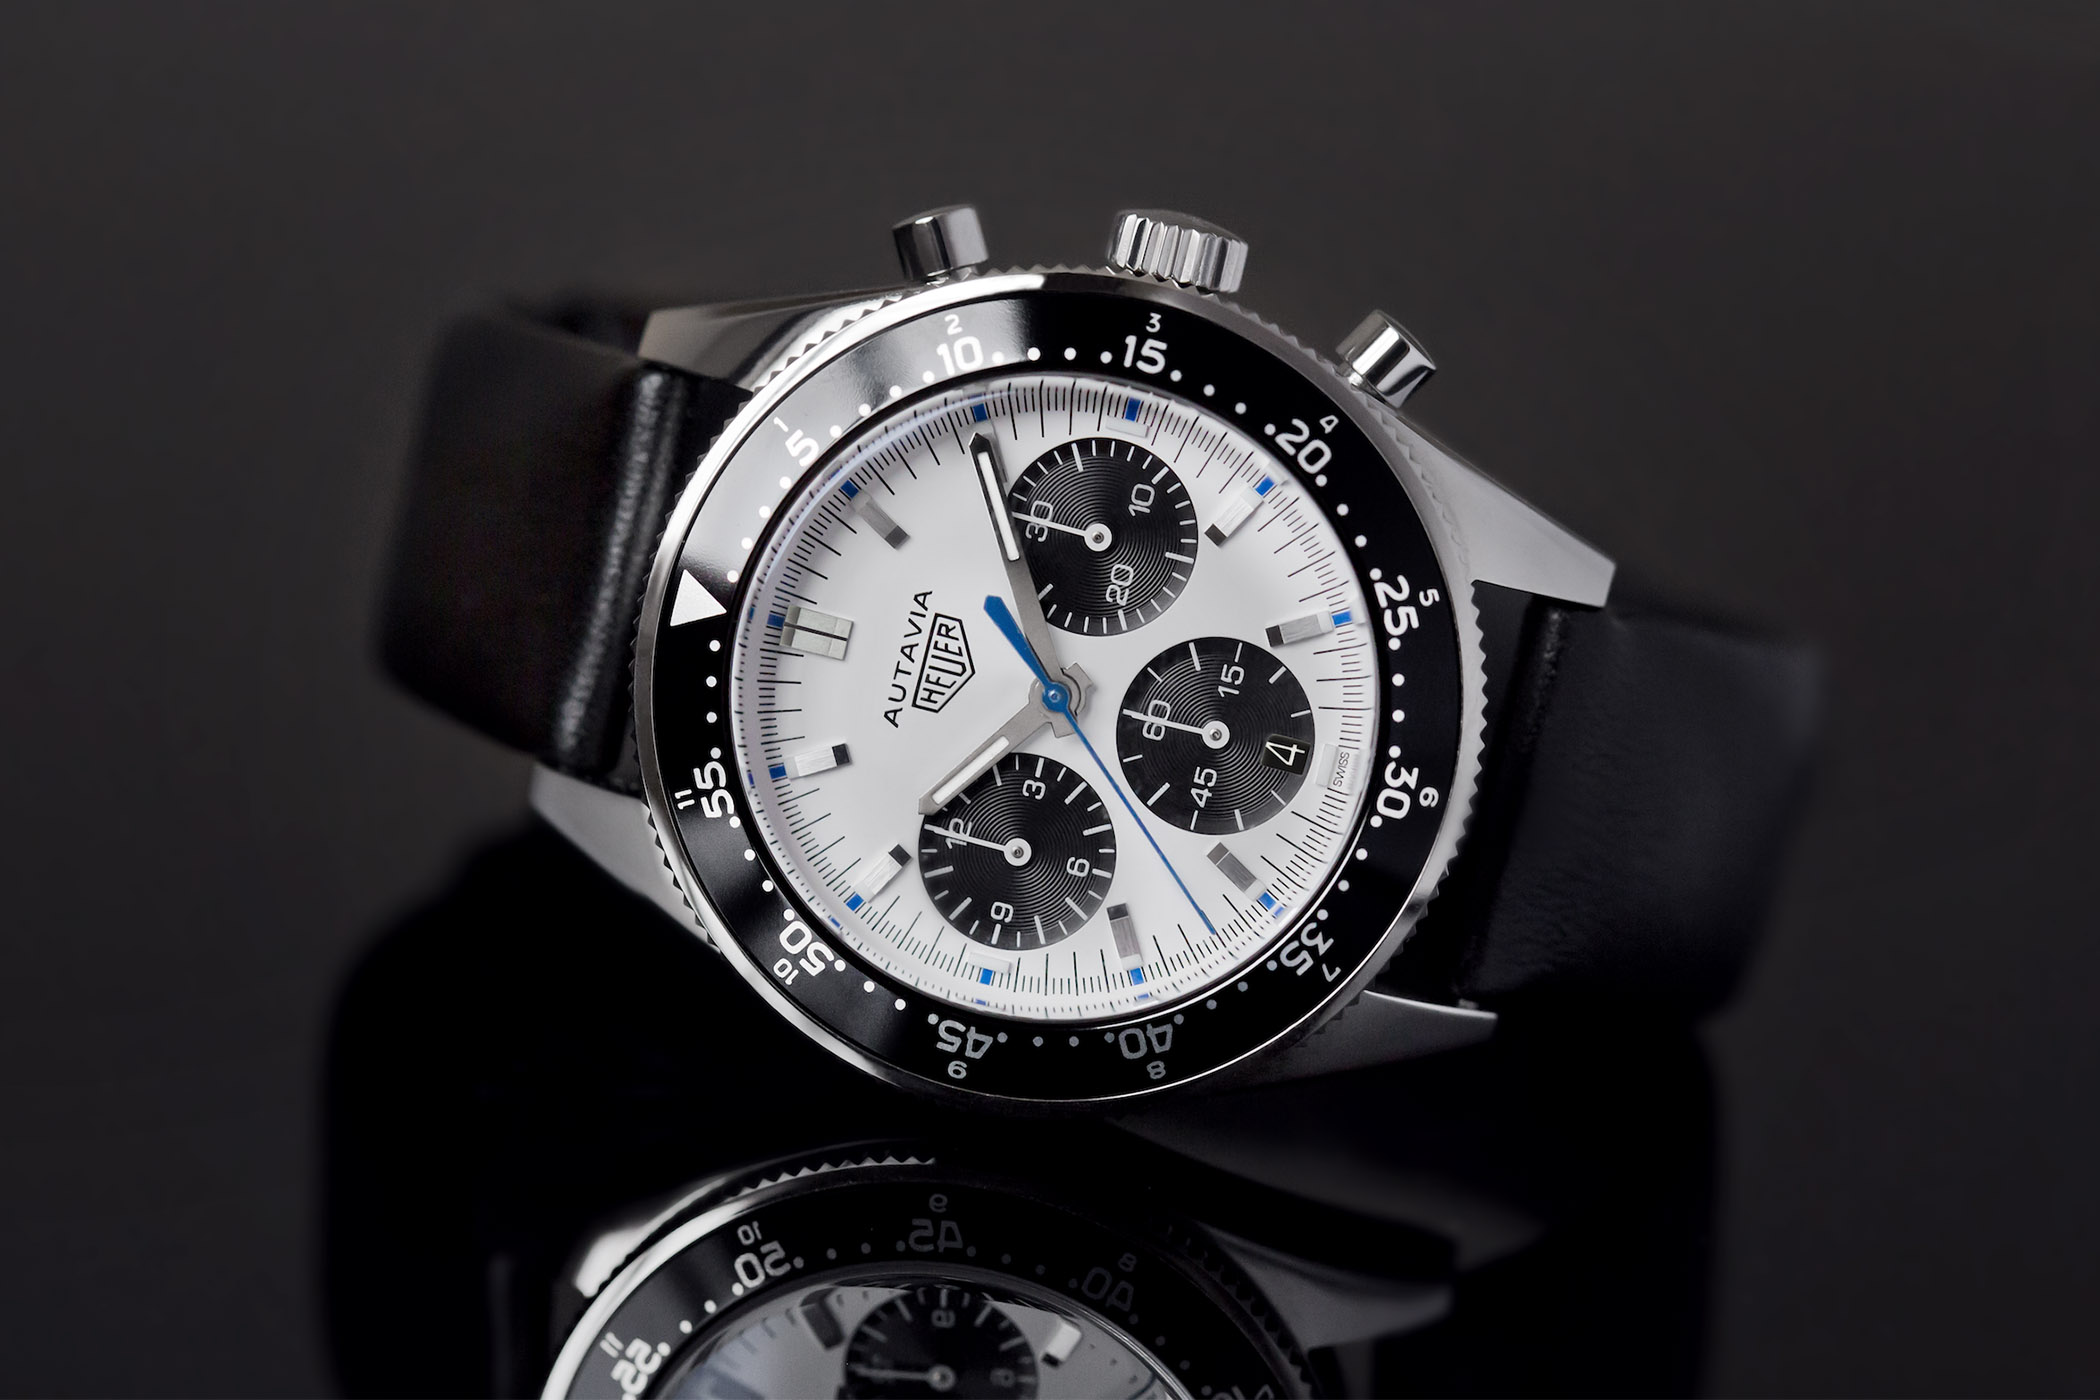 e4736c3a32e Introducing - Heuer Autavia Jo Siffert Collector s Edition by ...